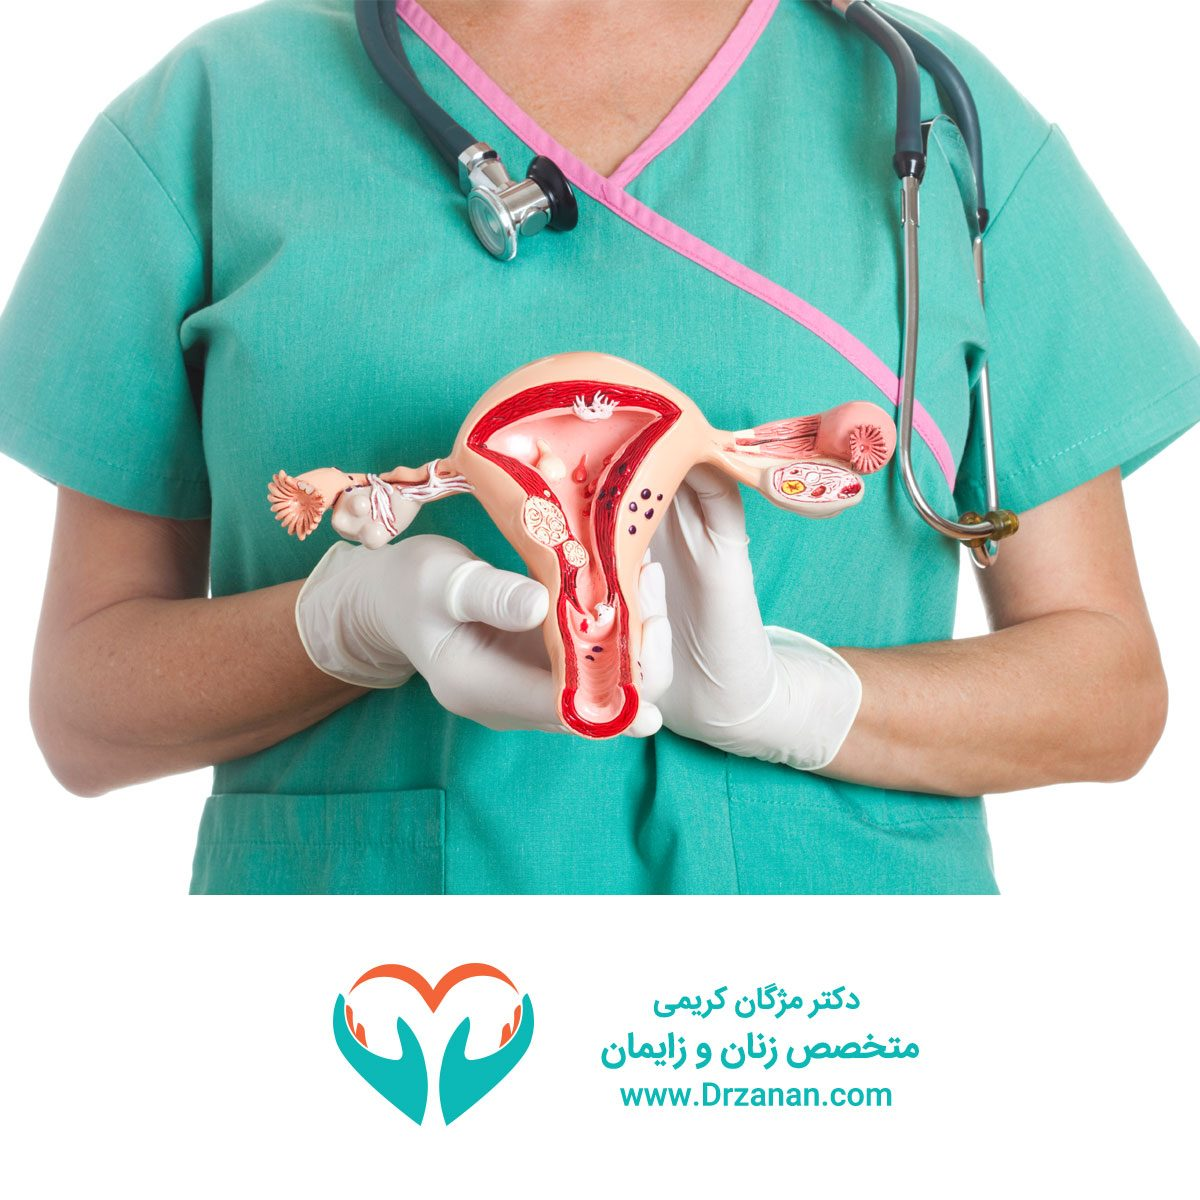 what-is-uterine-fibroids-and-how-is-it-treated-1200x1200.jpg